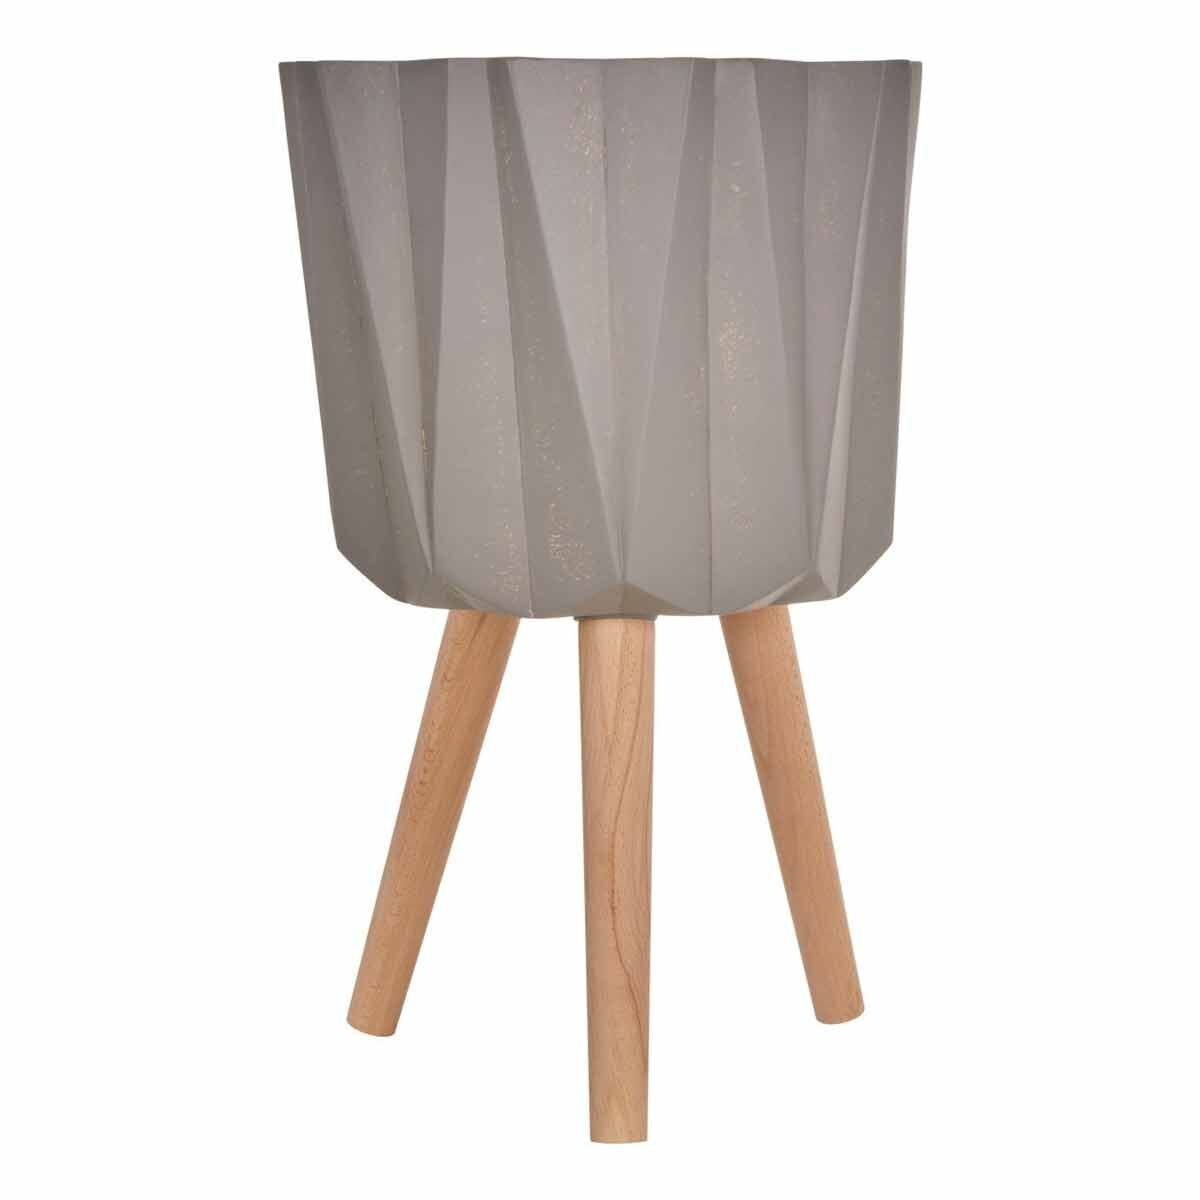 Interiors by PH Large Multi-Faceted Planter in Grey